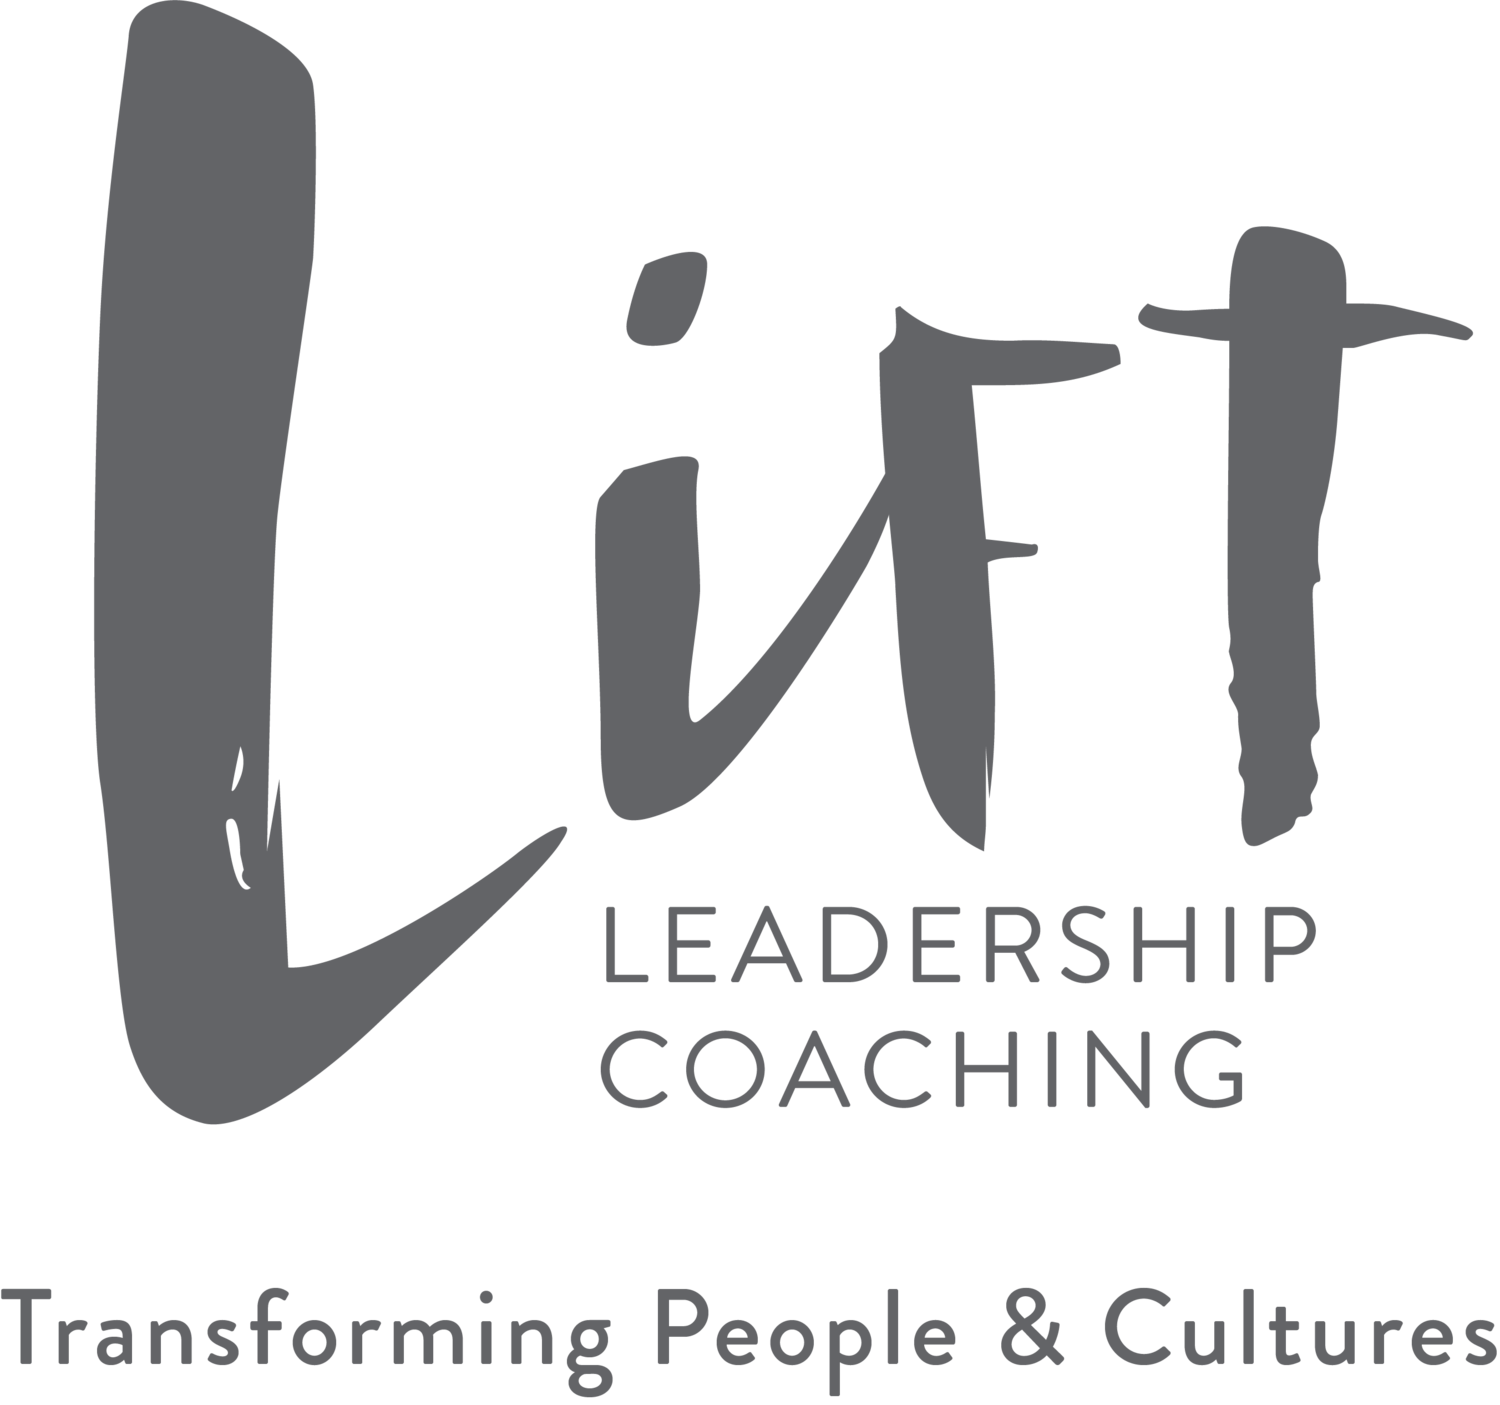 Lift Leadership Coaching